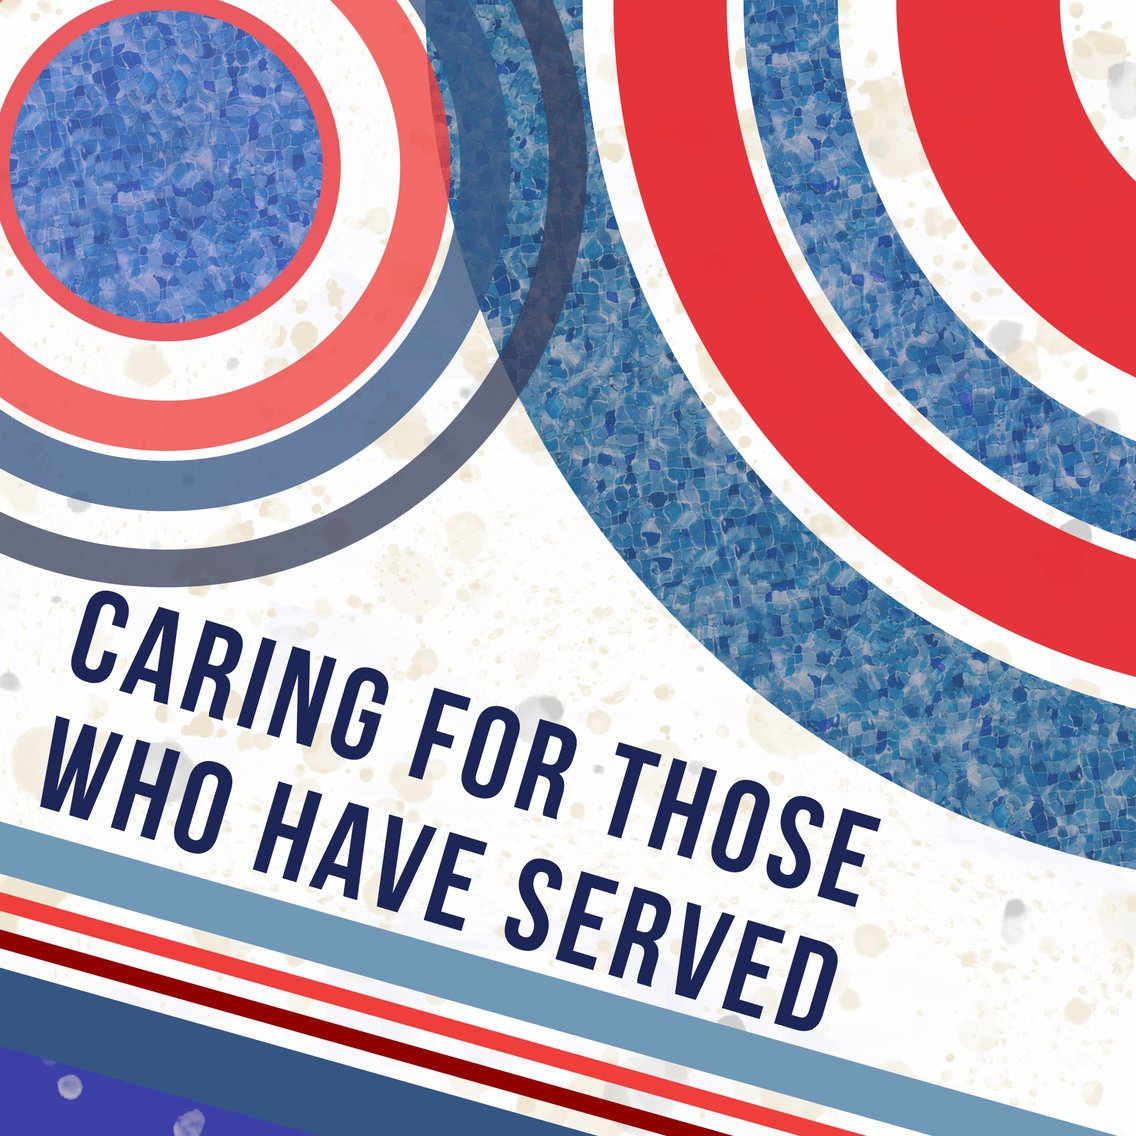 Caring for those who have Served - immagine di copertina